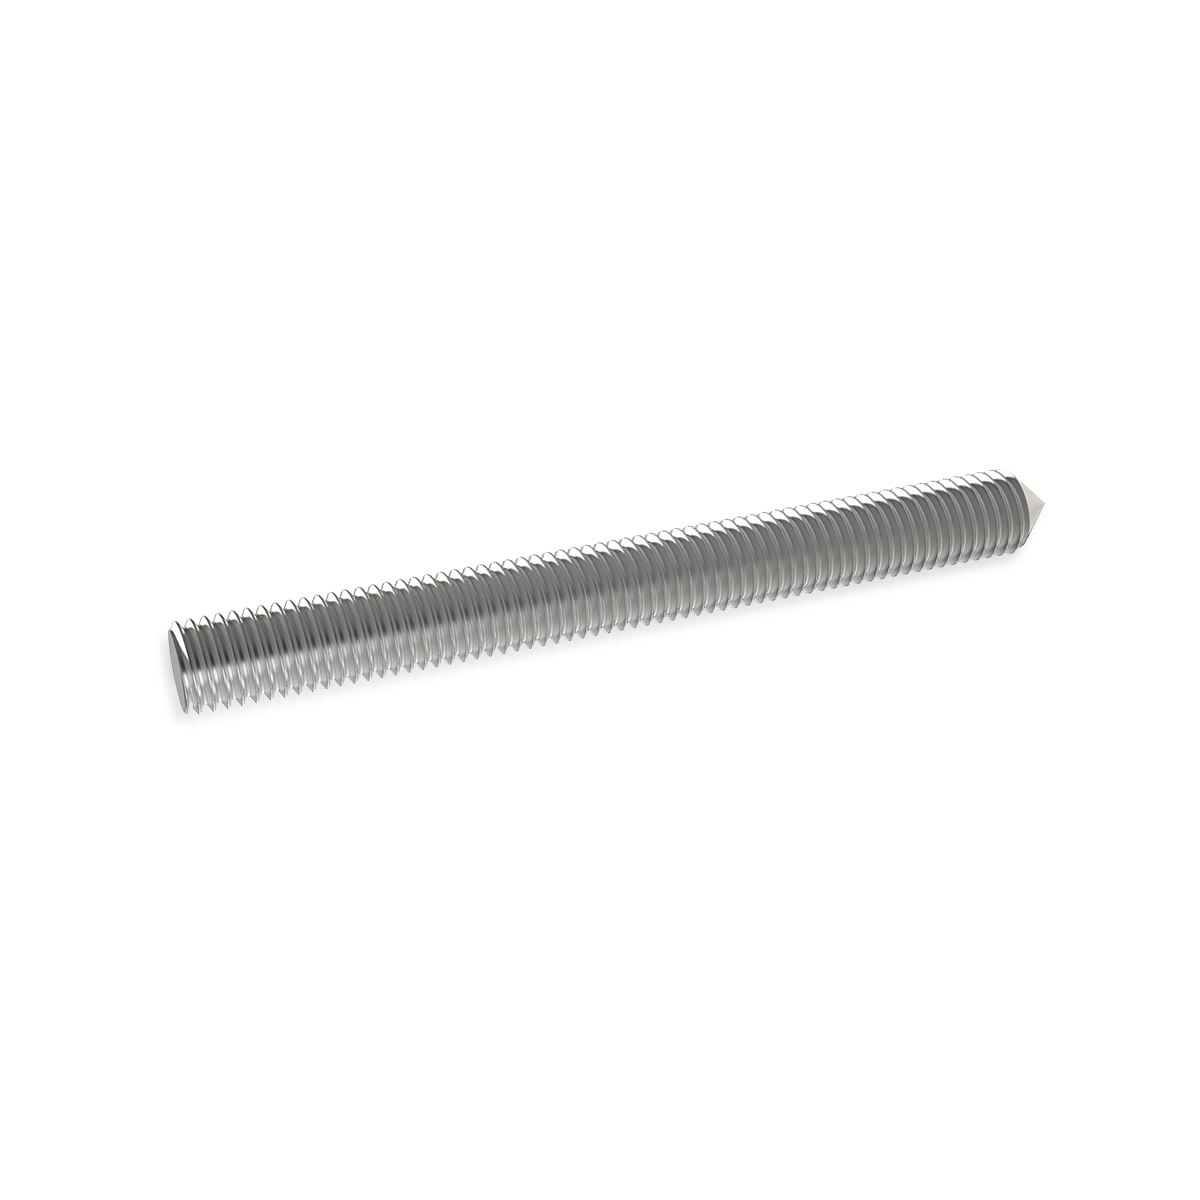 3/16'' Diameter X 5'' Long, Aluminum 10-24 Threaded Stud (1 End Flat - 1 End Conical)